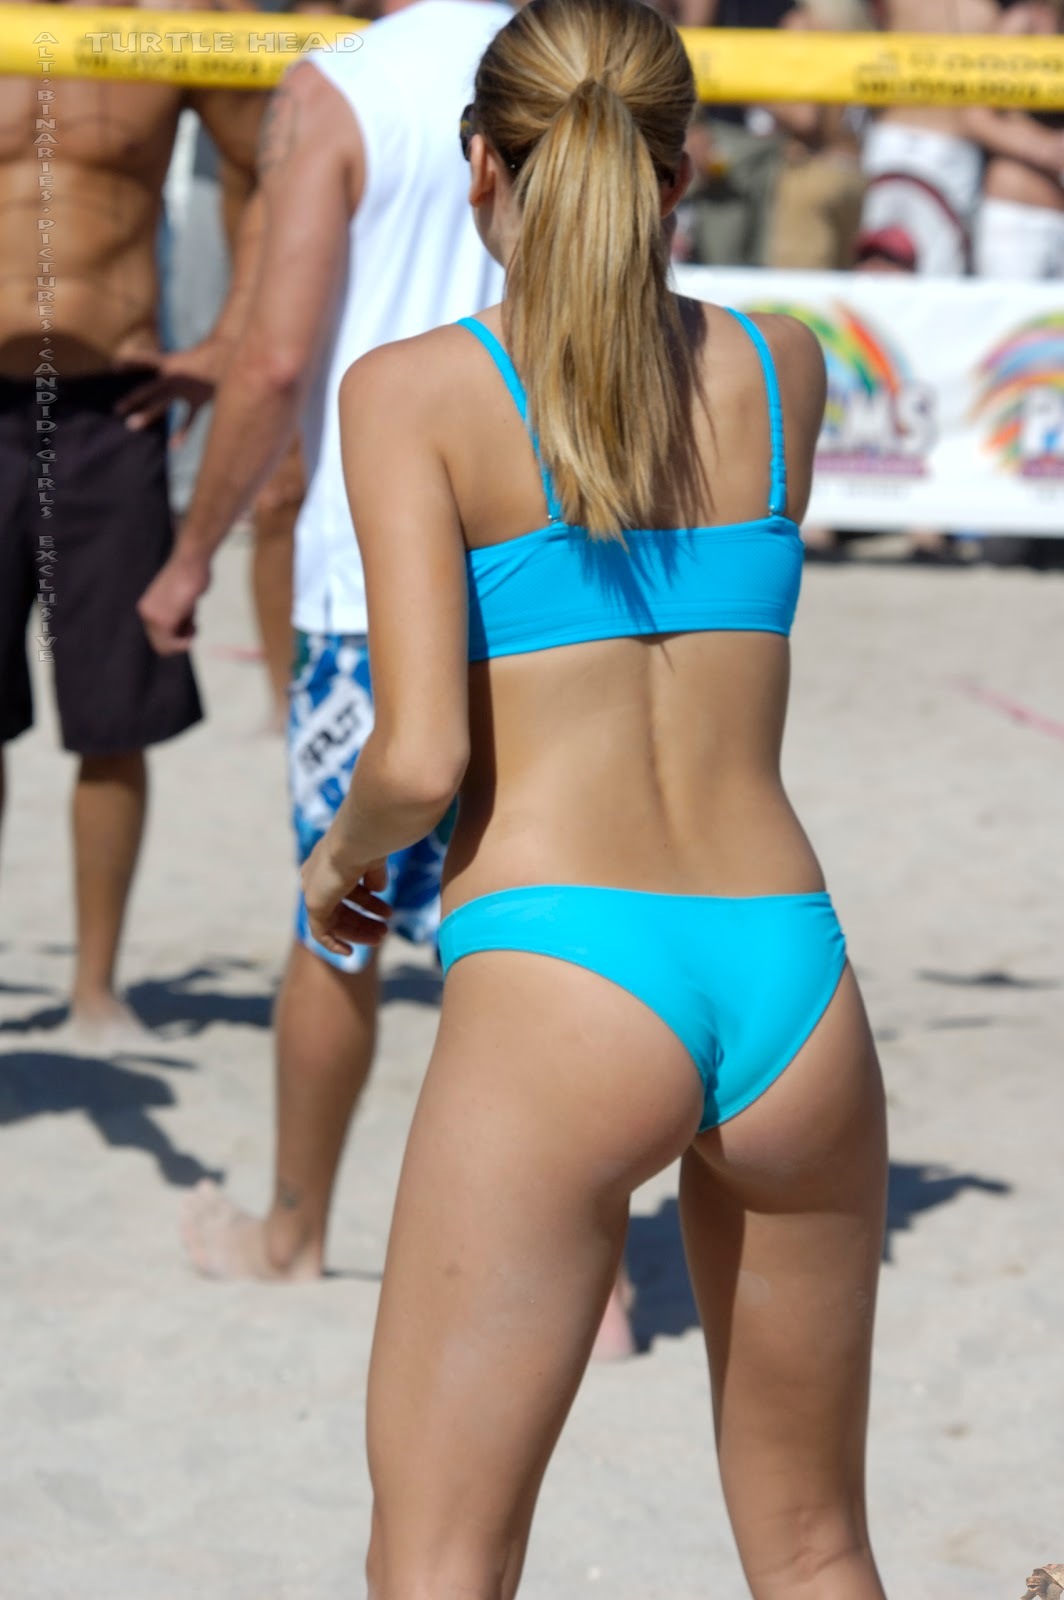 Beach Volleyball Wardrobe Malfunction Pictures